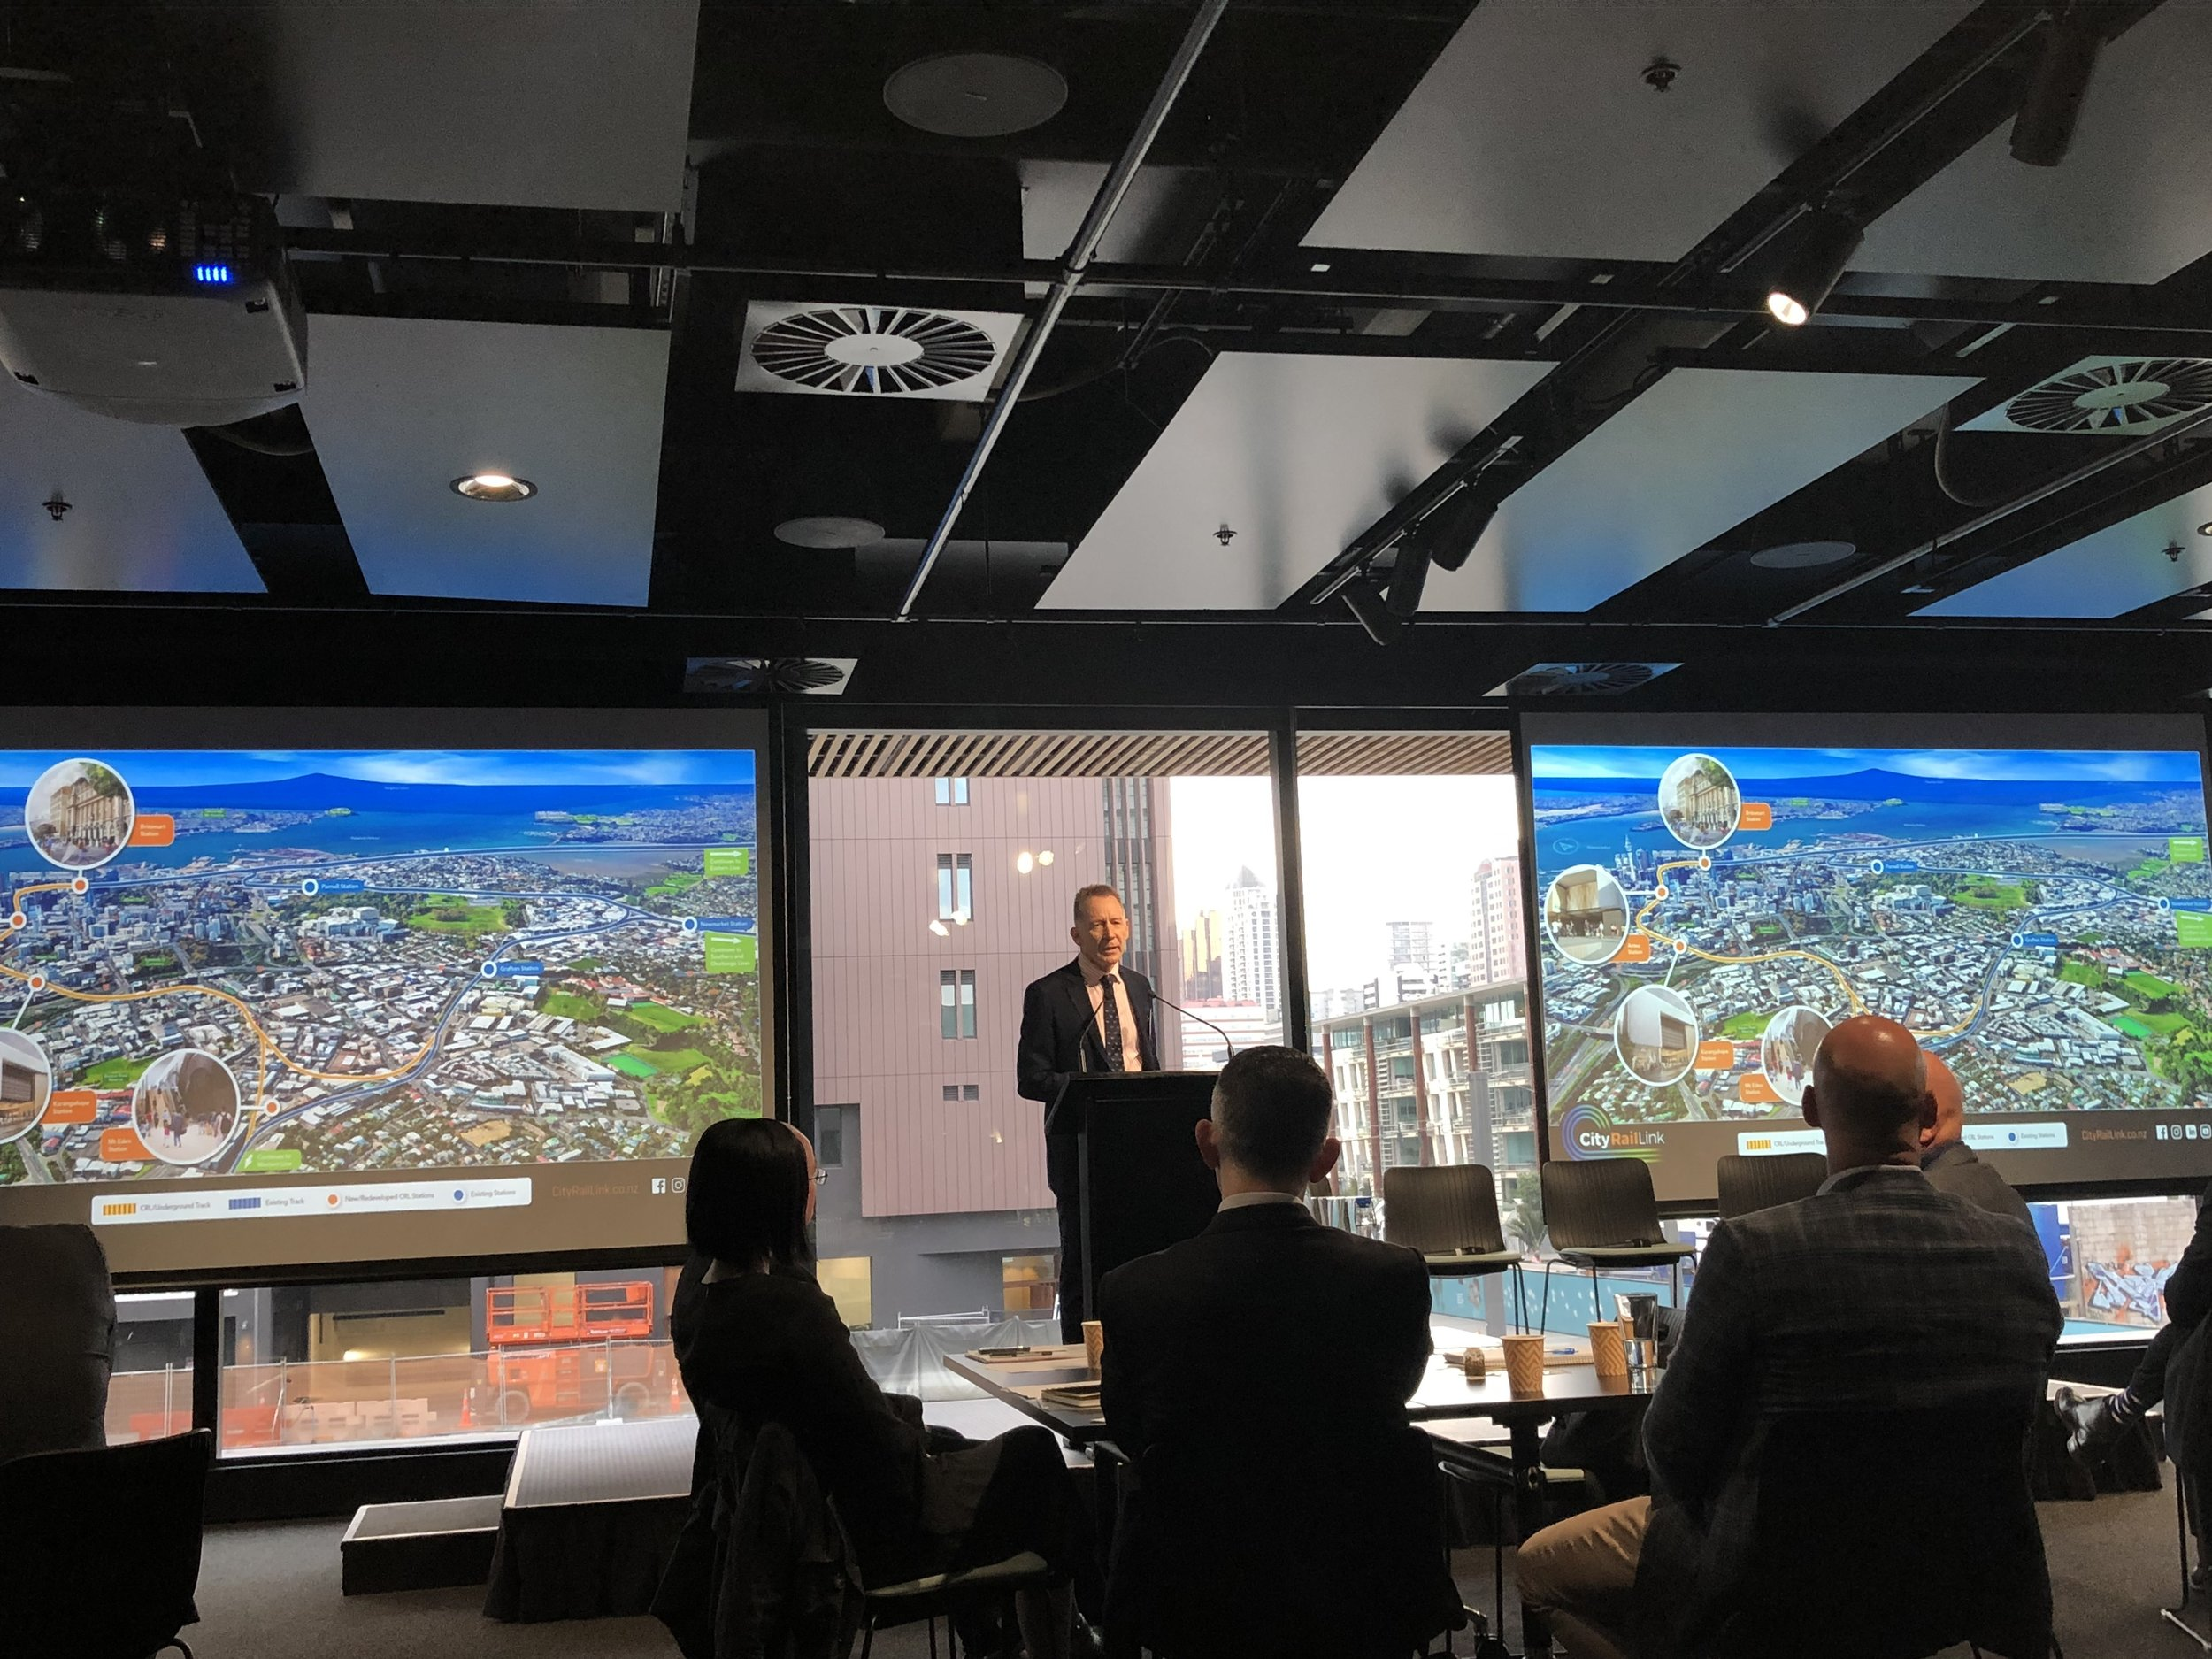 Our CE Dr. Sean Sweeney presented at the city centre CE Forum 8  May 2019